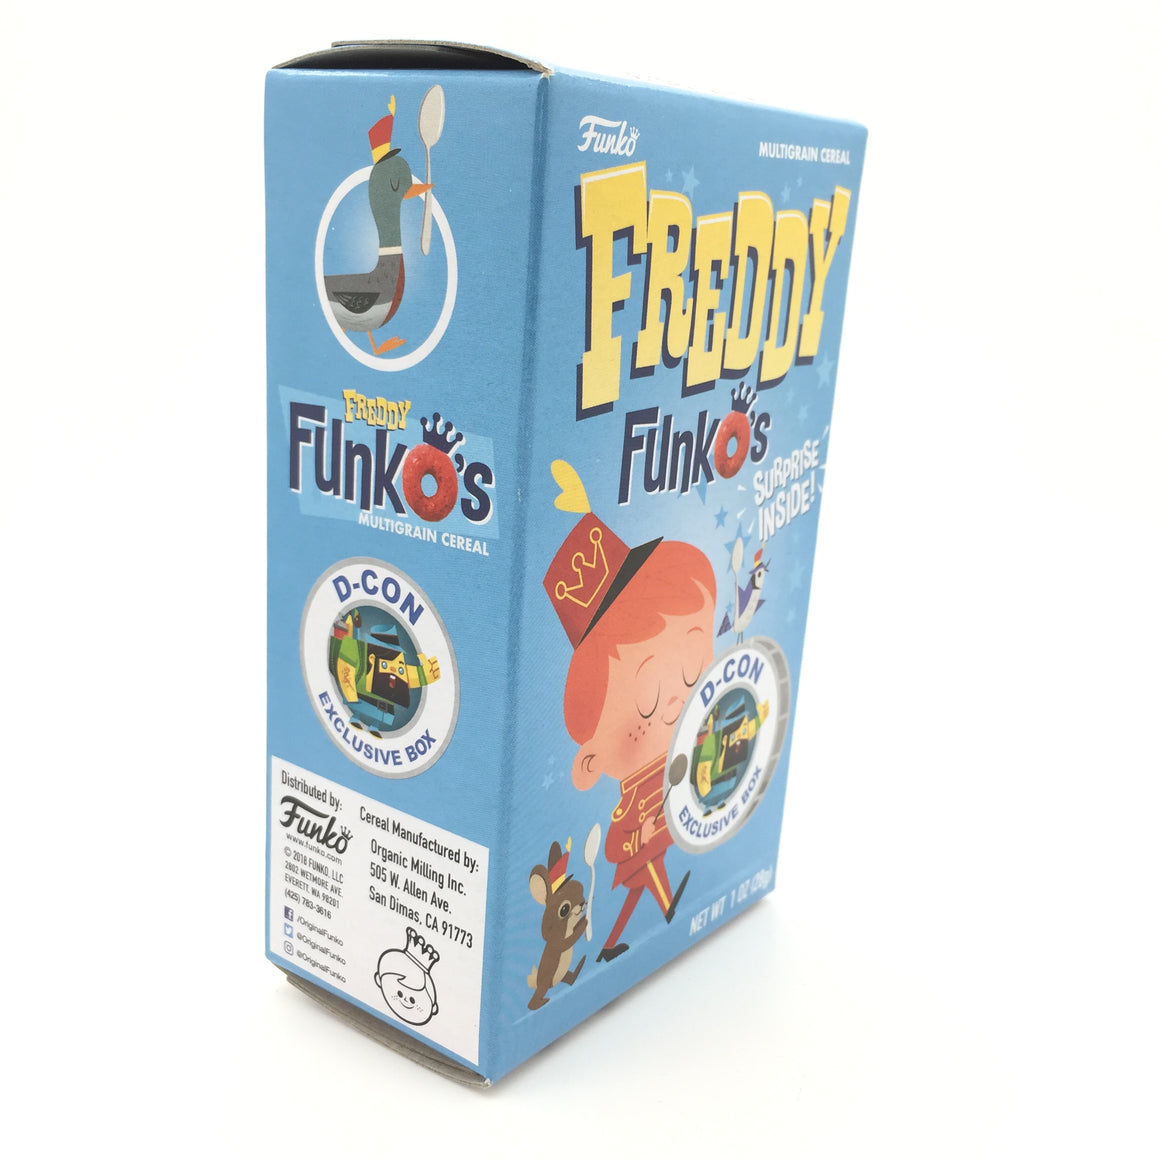 Freddy FunkO's D-CON Exclusive Small Cereal Box with Surprise Sticker